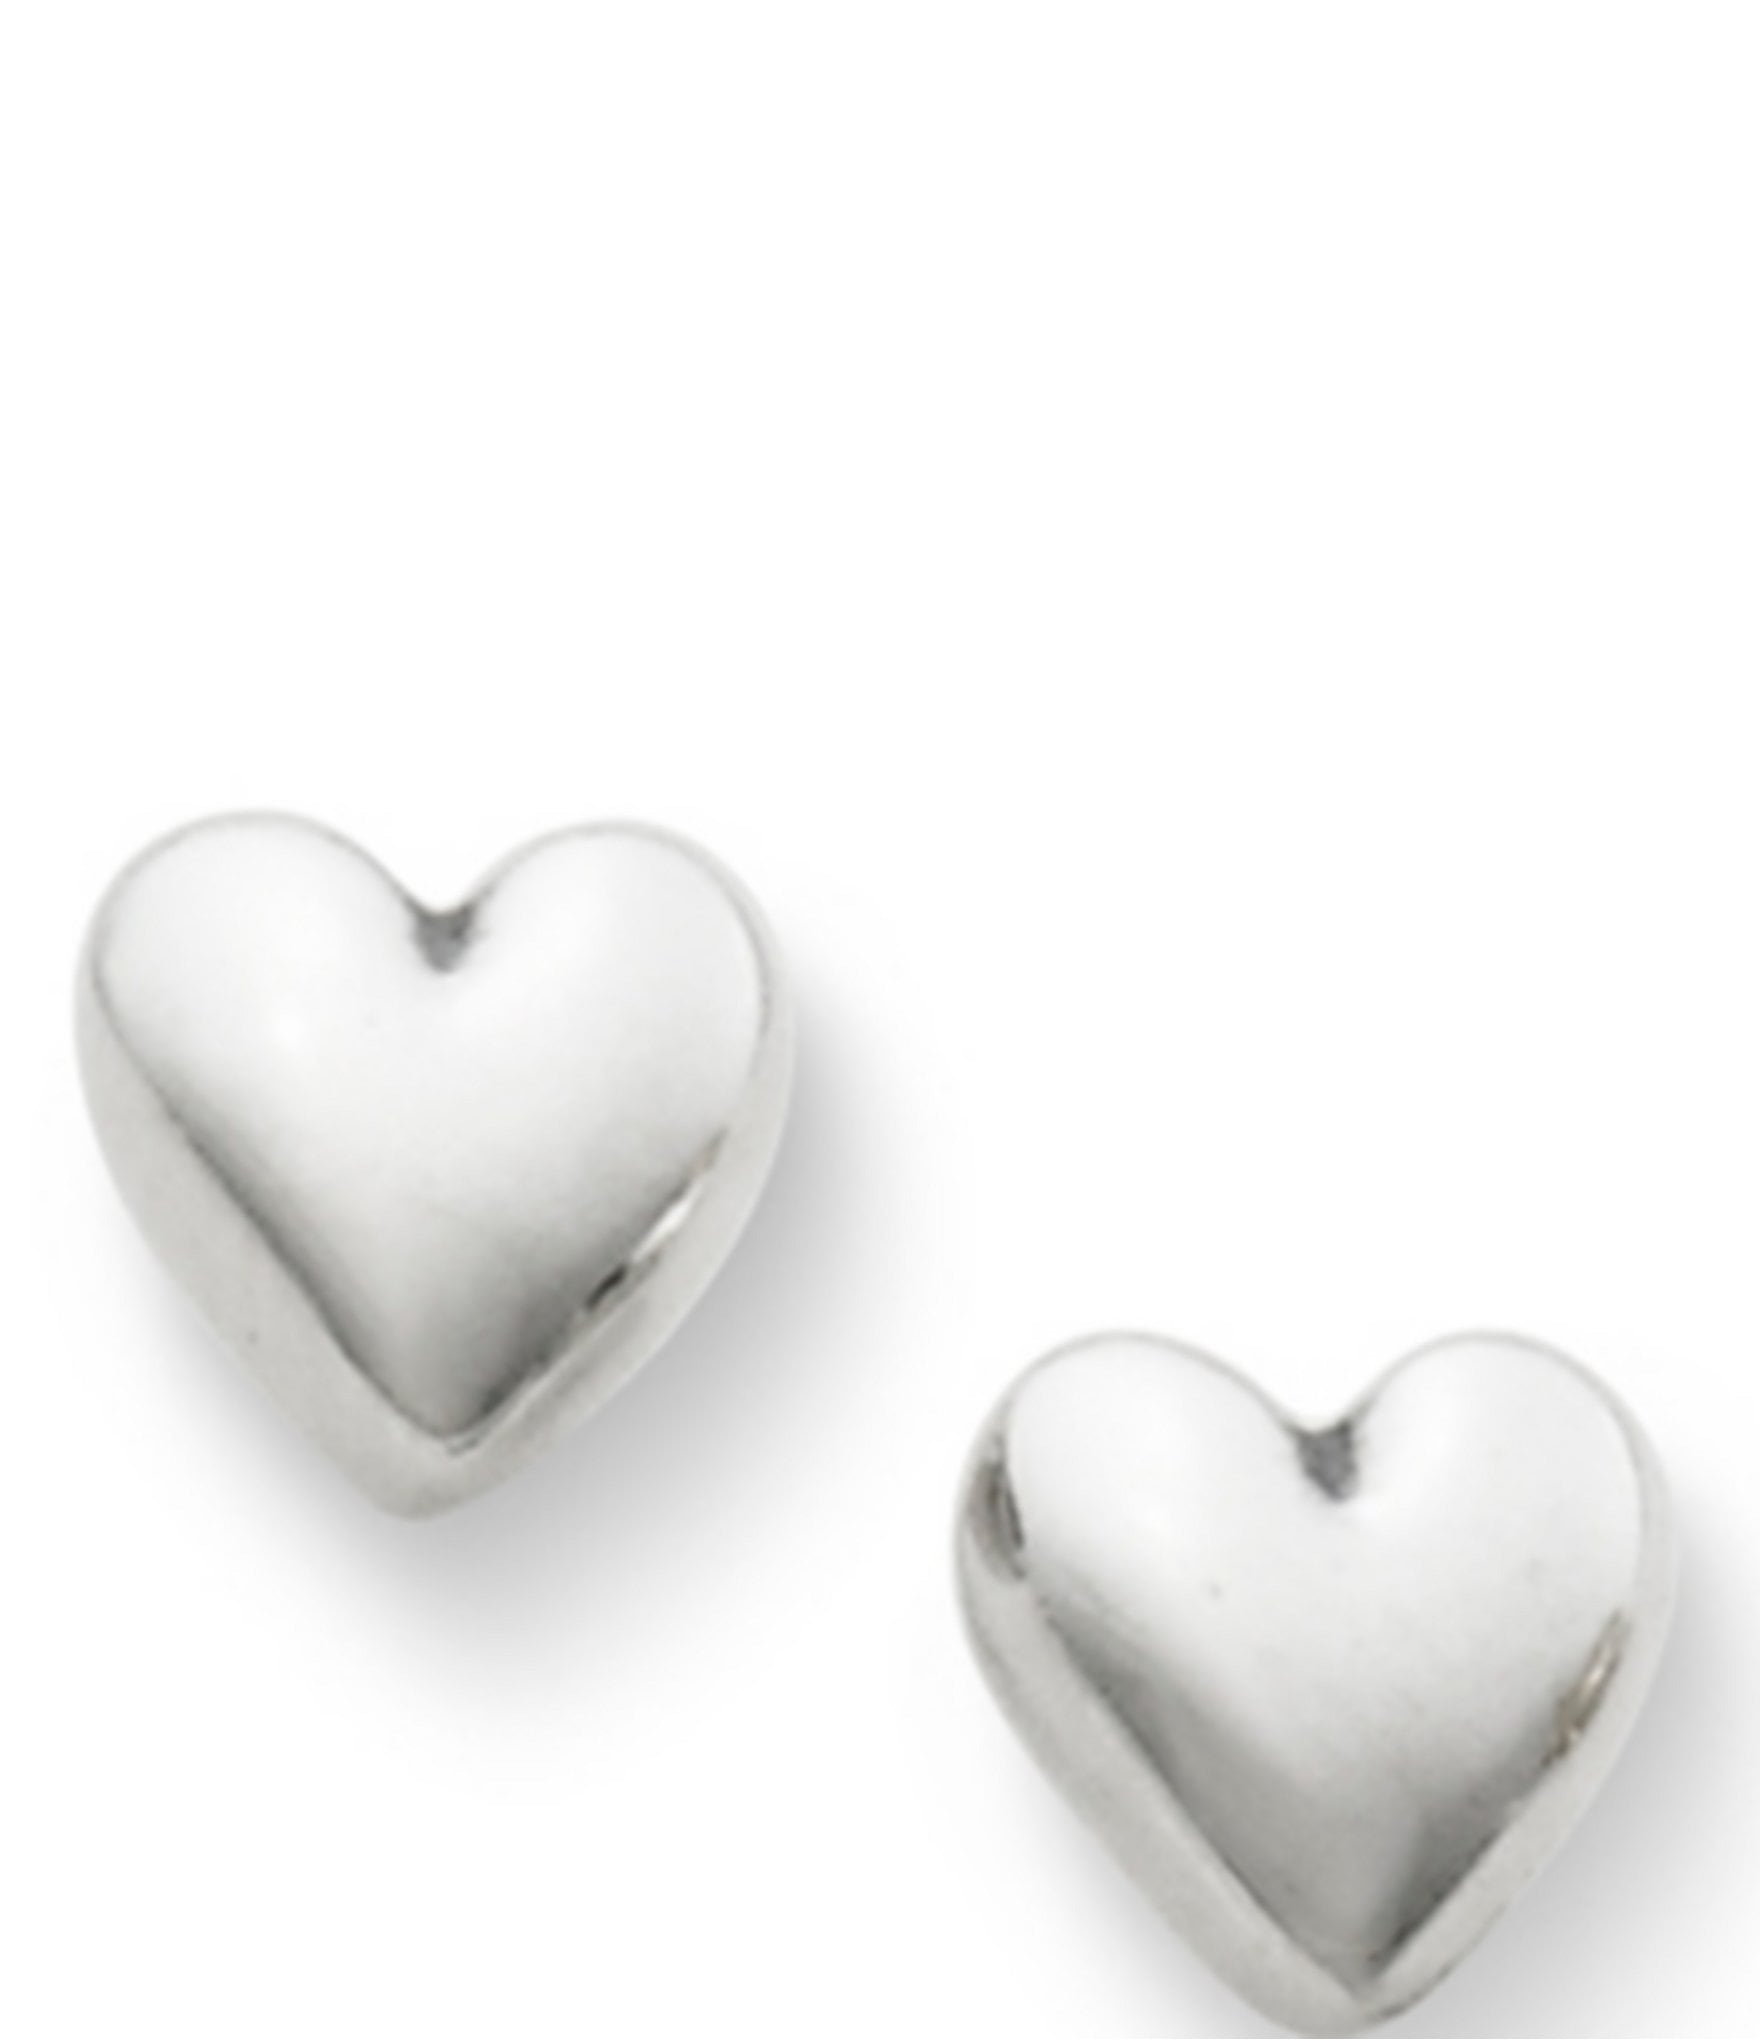 James Avery Solid Heart Sterling Silver Stud Earrings Dillards